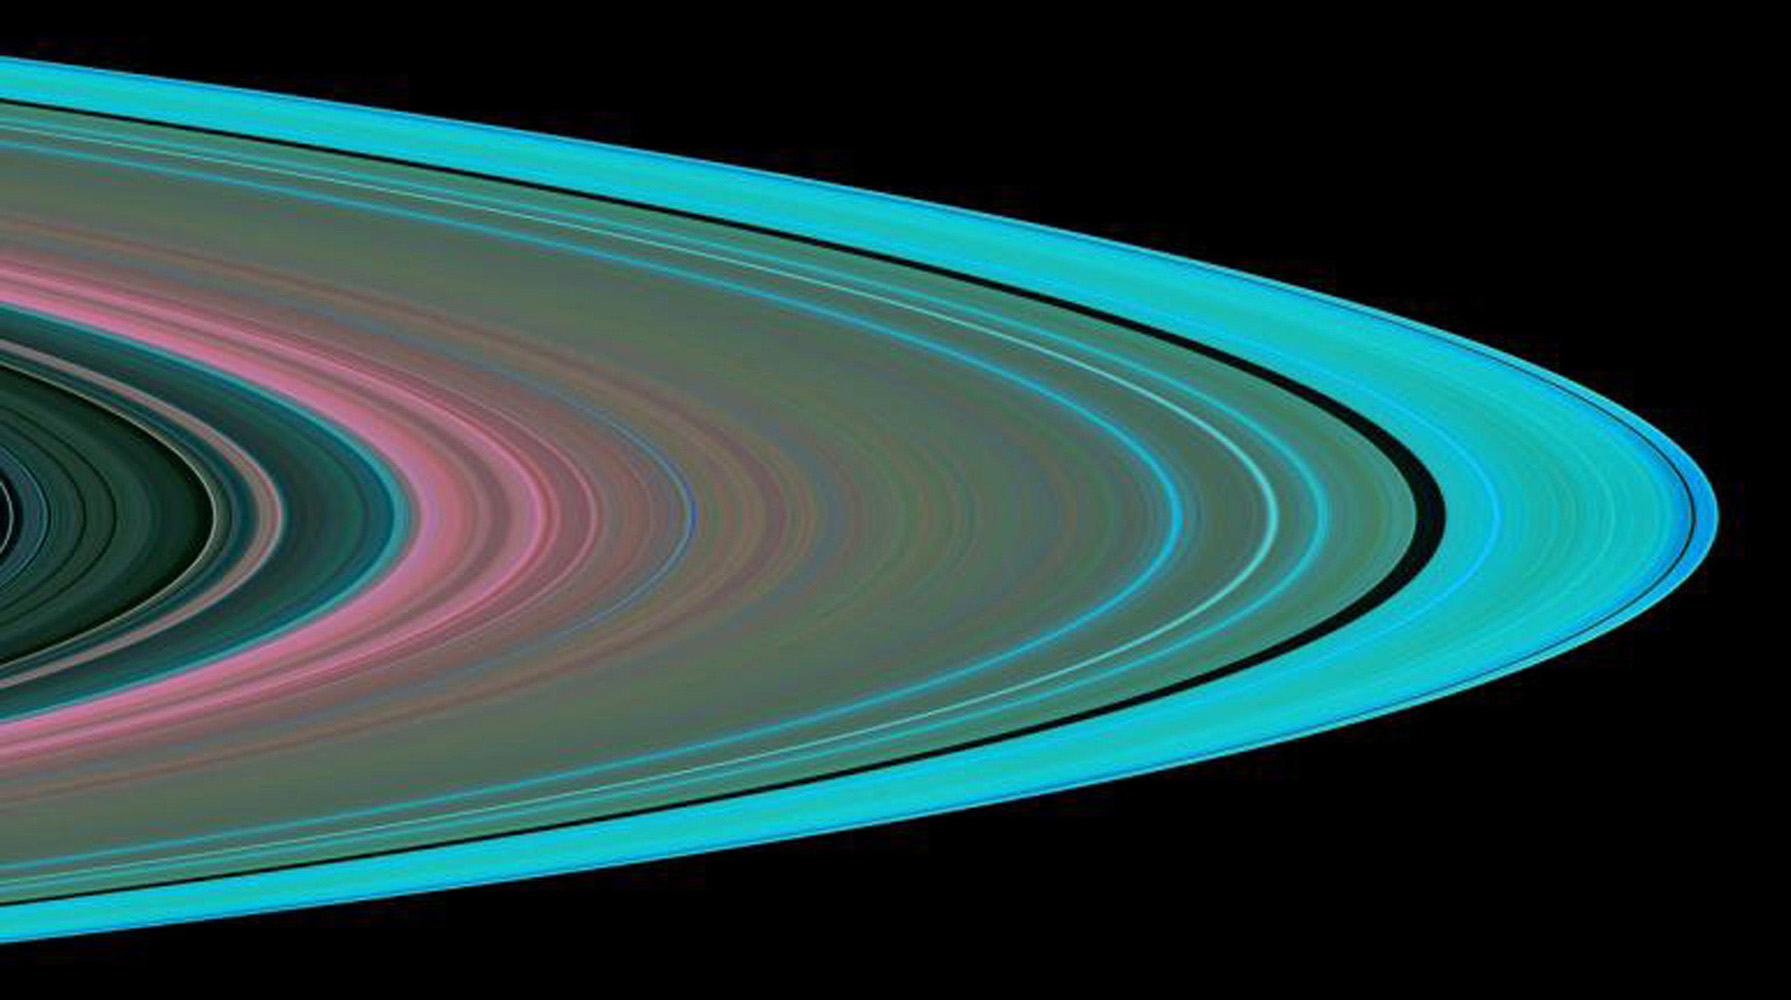 Specially designed Cassini orbits place Earth and Cassini on opposite sides of Saturn's rings, a geometry known as occultation. NASA's Cassini spacecraft conducted the first radio occultation observation of Saturn's rings on May 3, 2005.